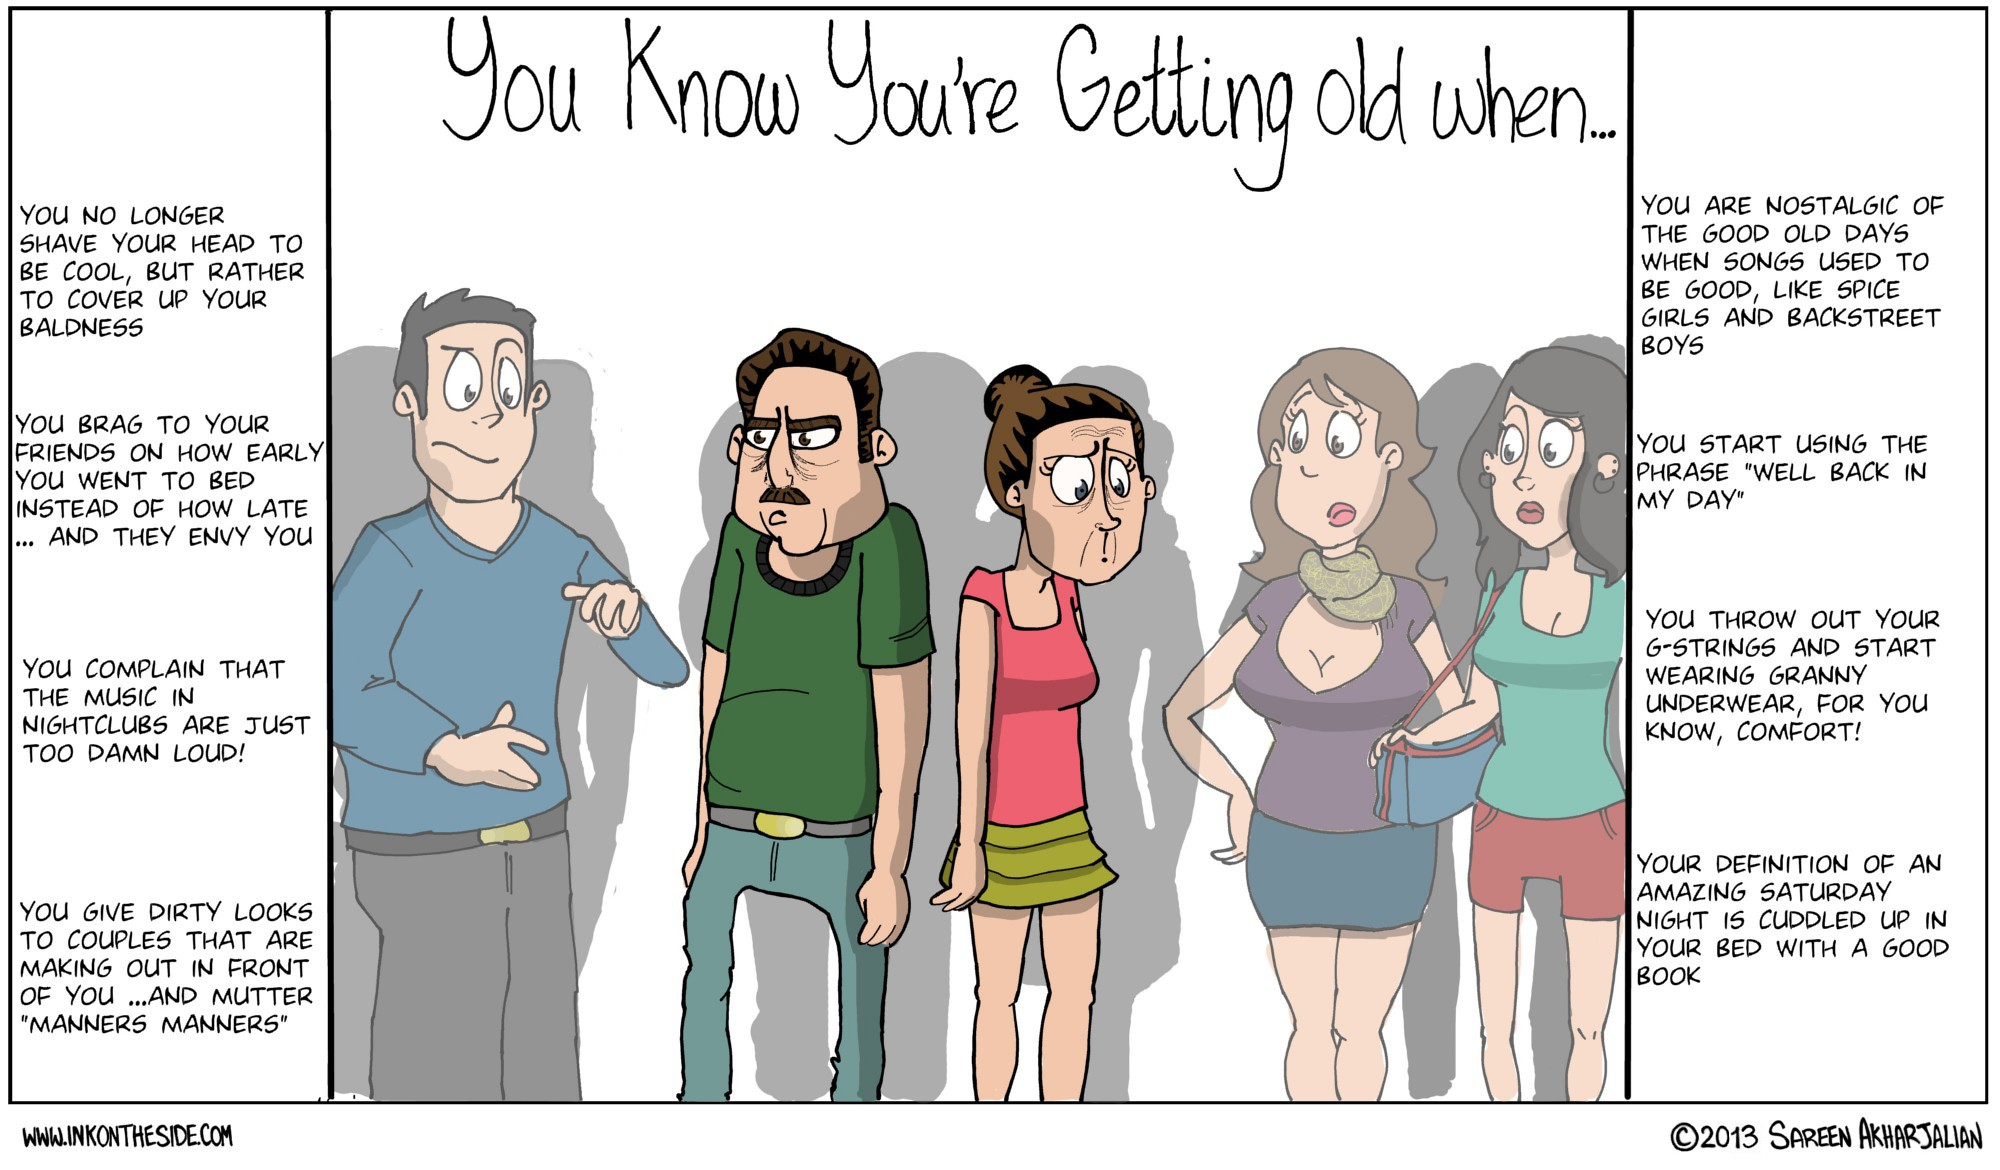 You KNOW you're getting old when…